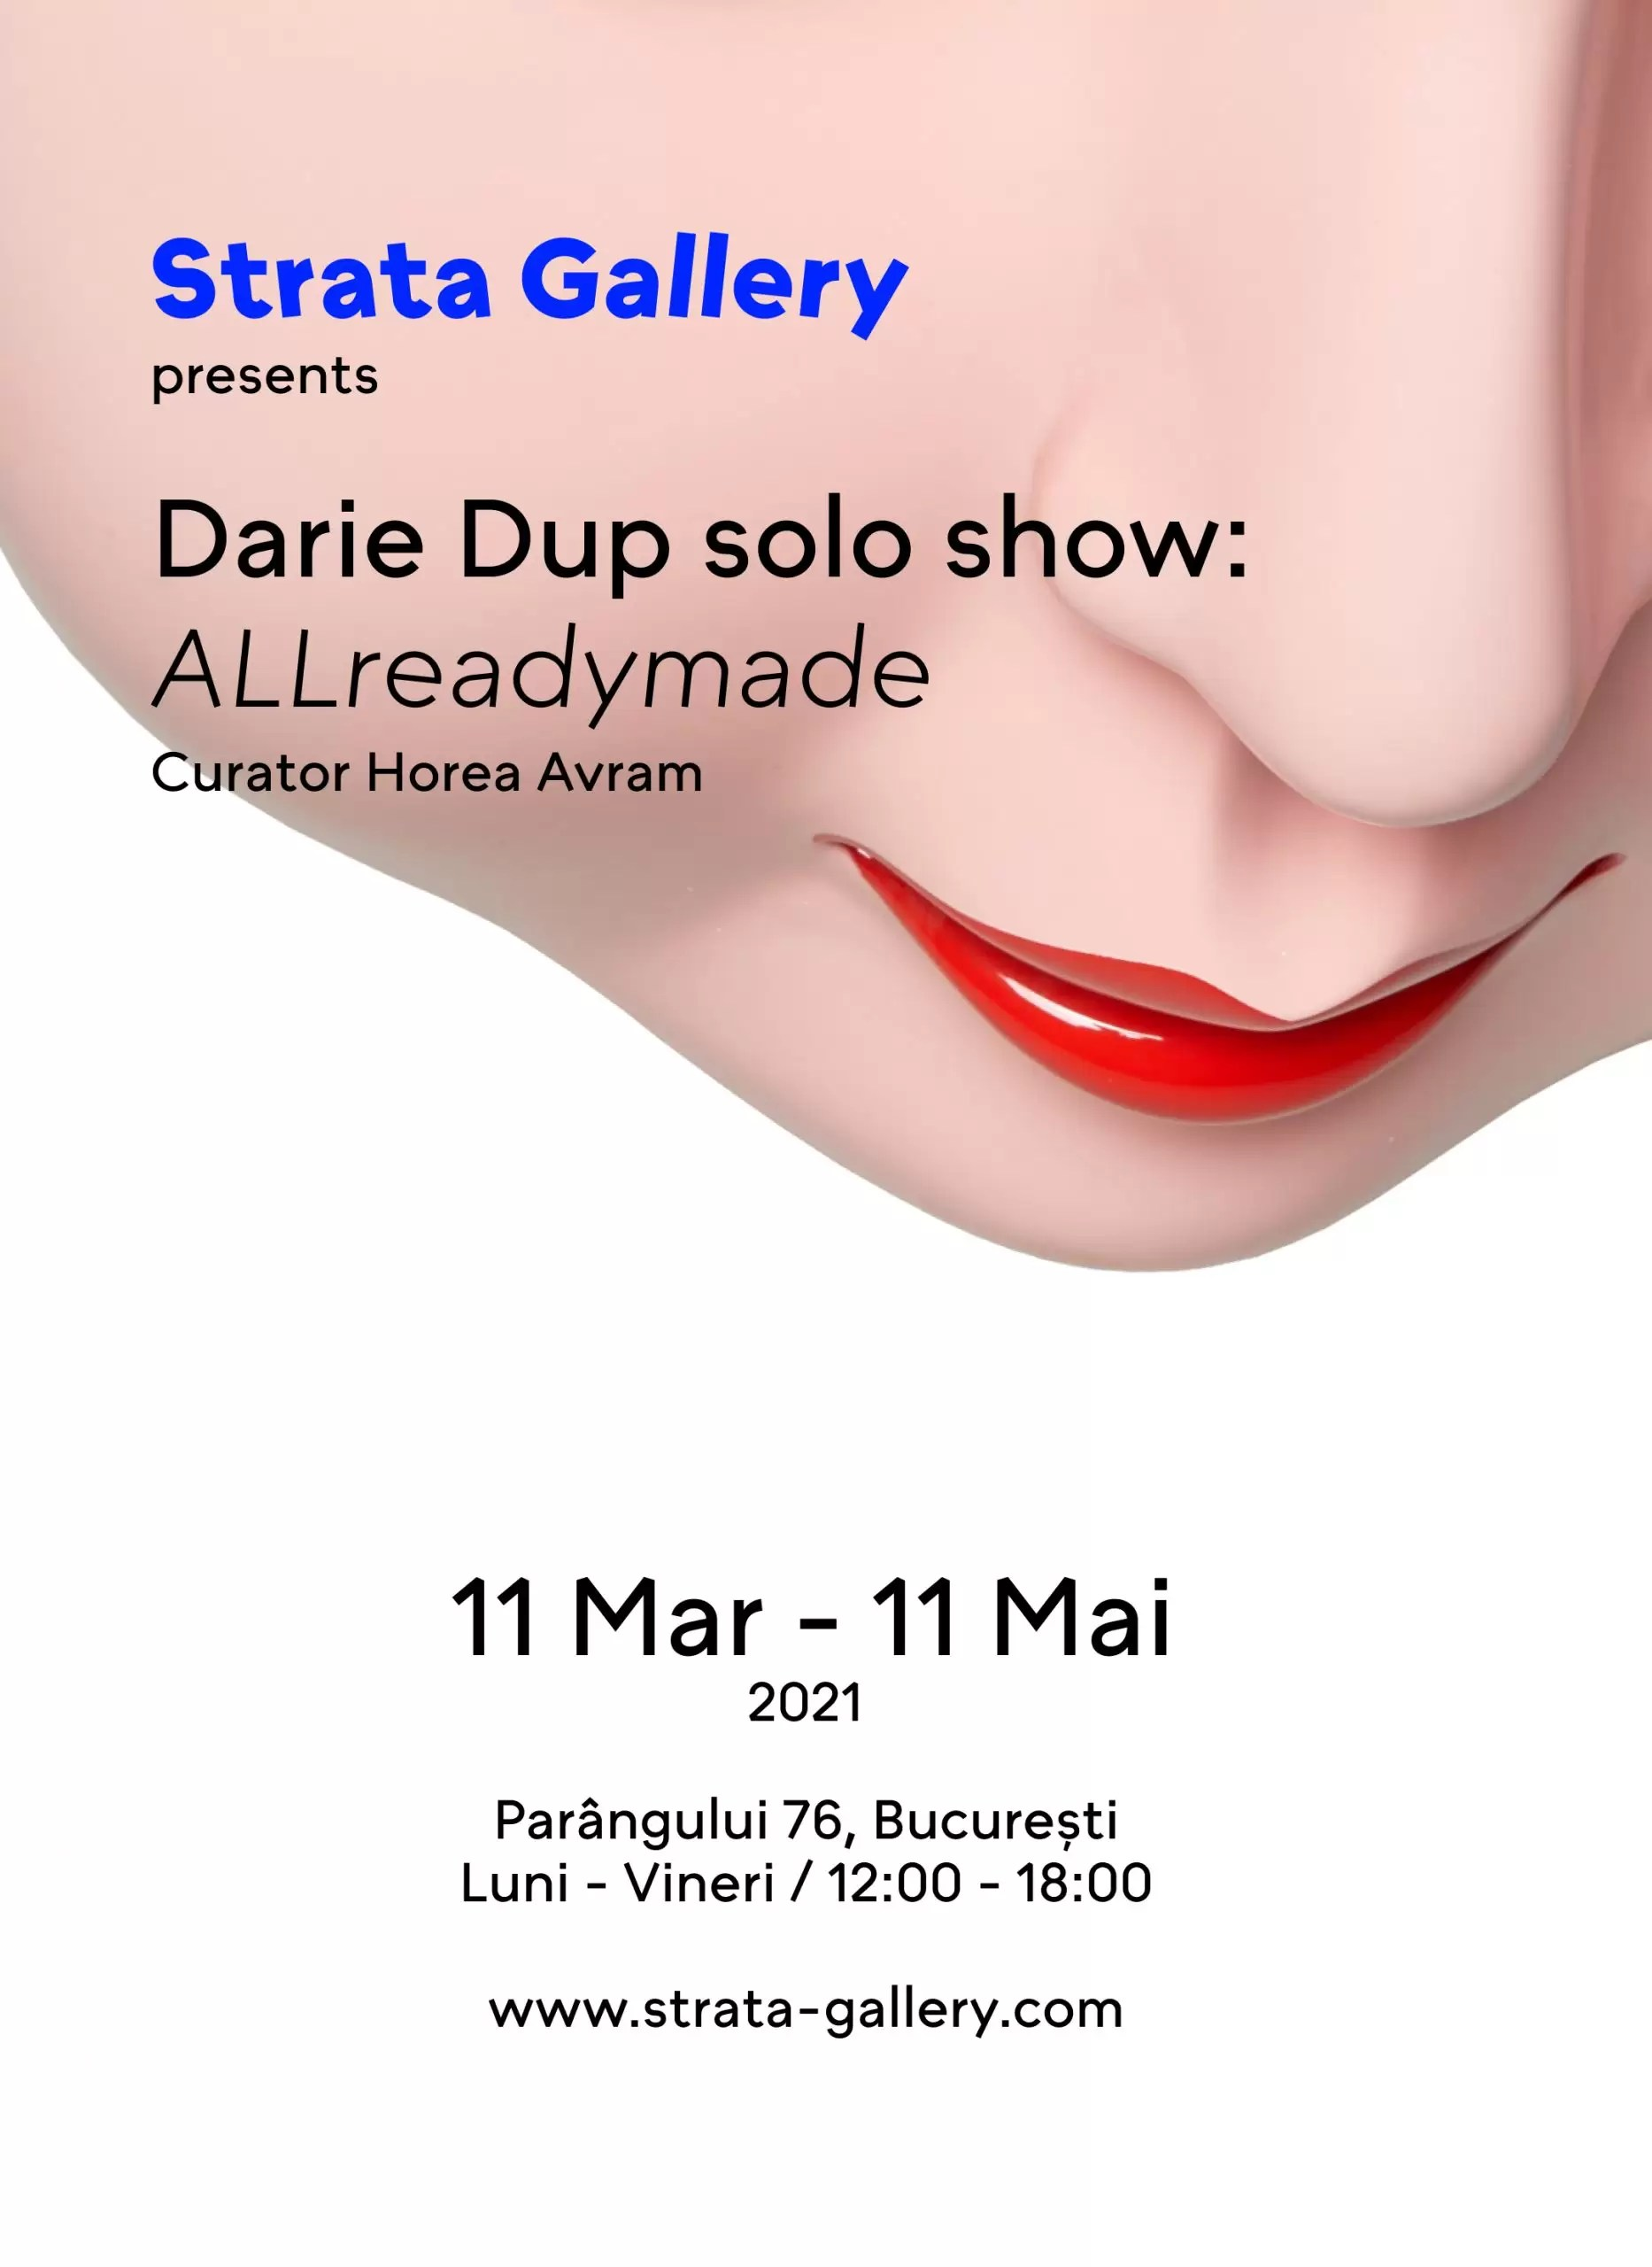 Darie-Dup-solo-show